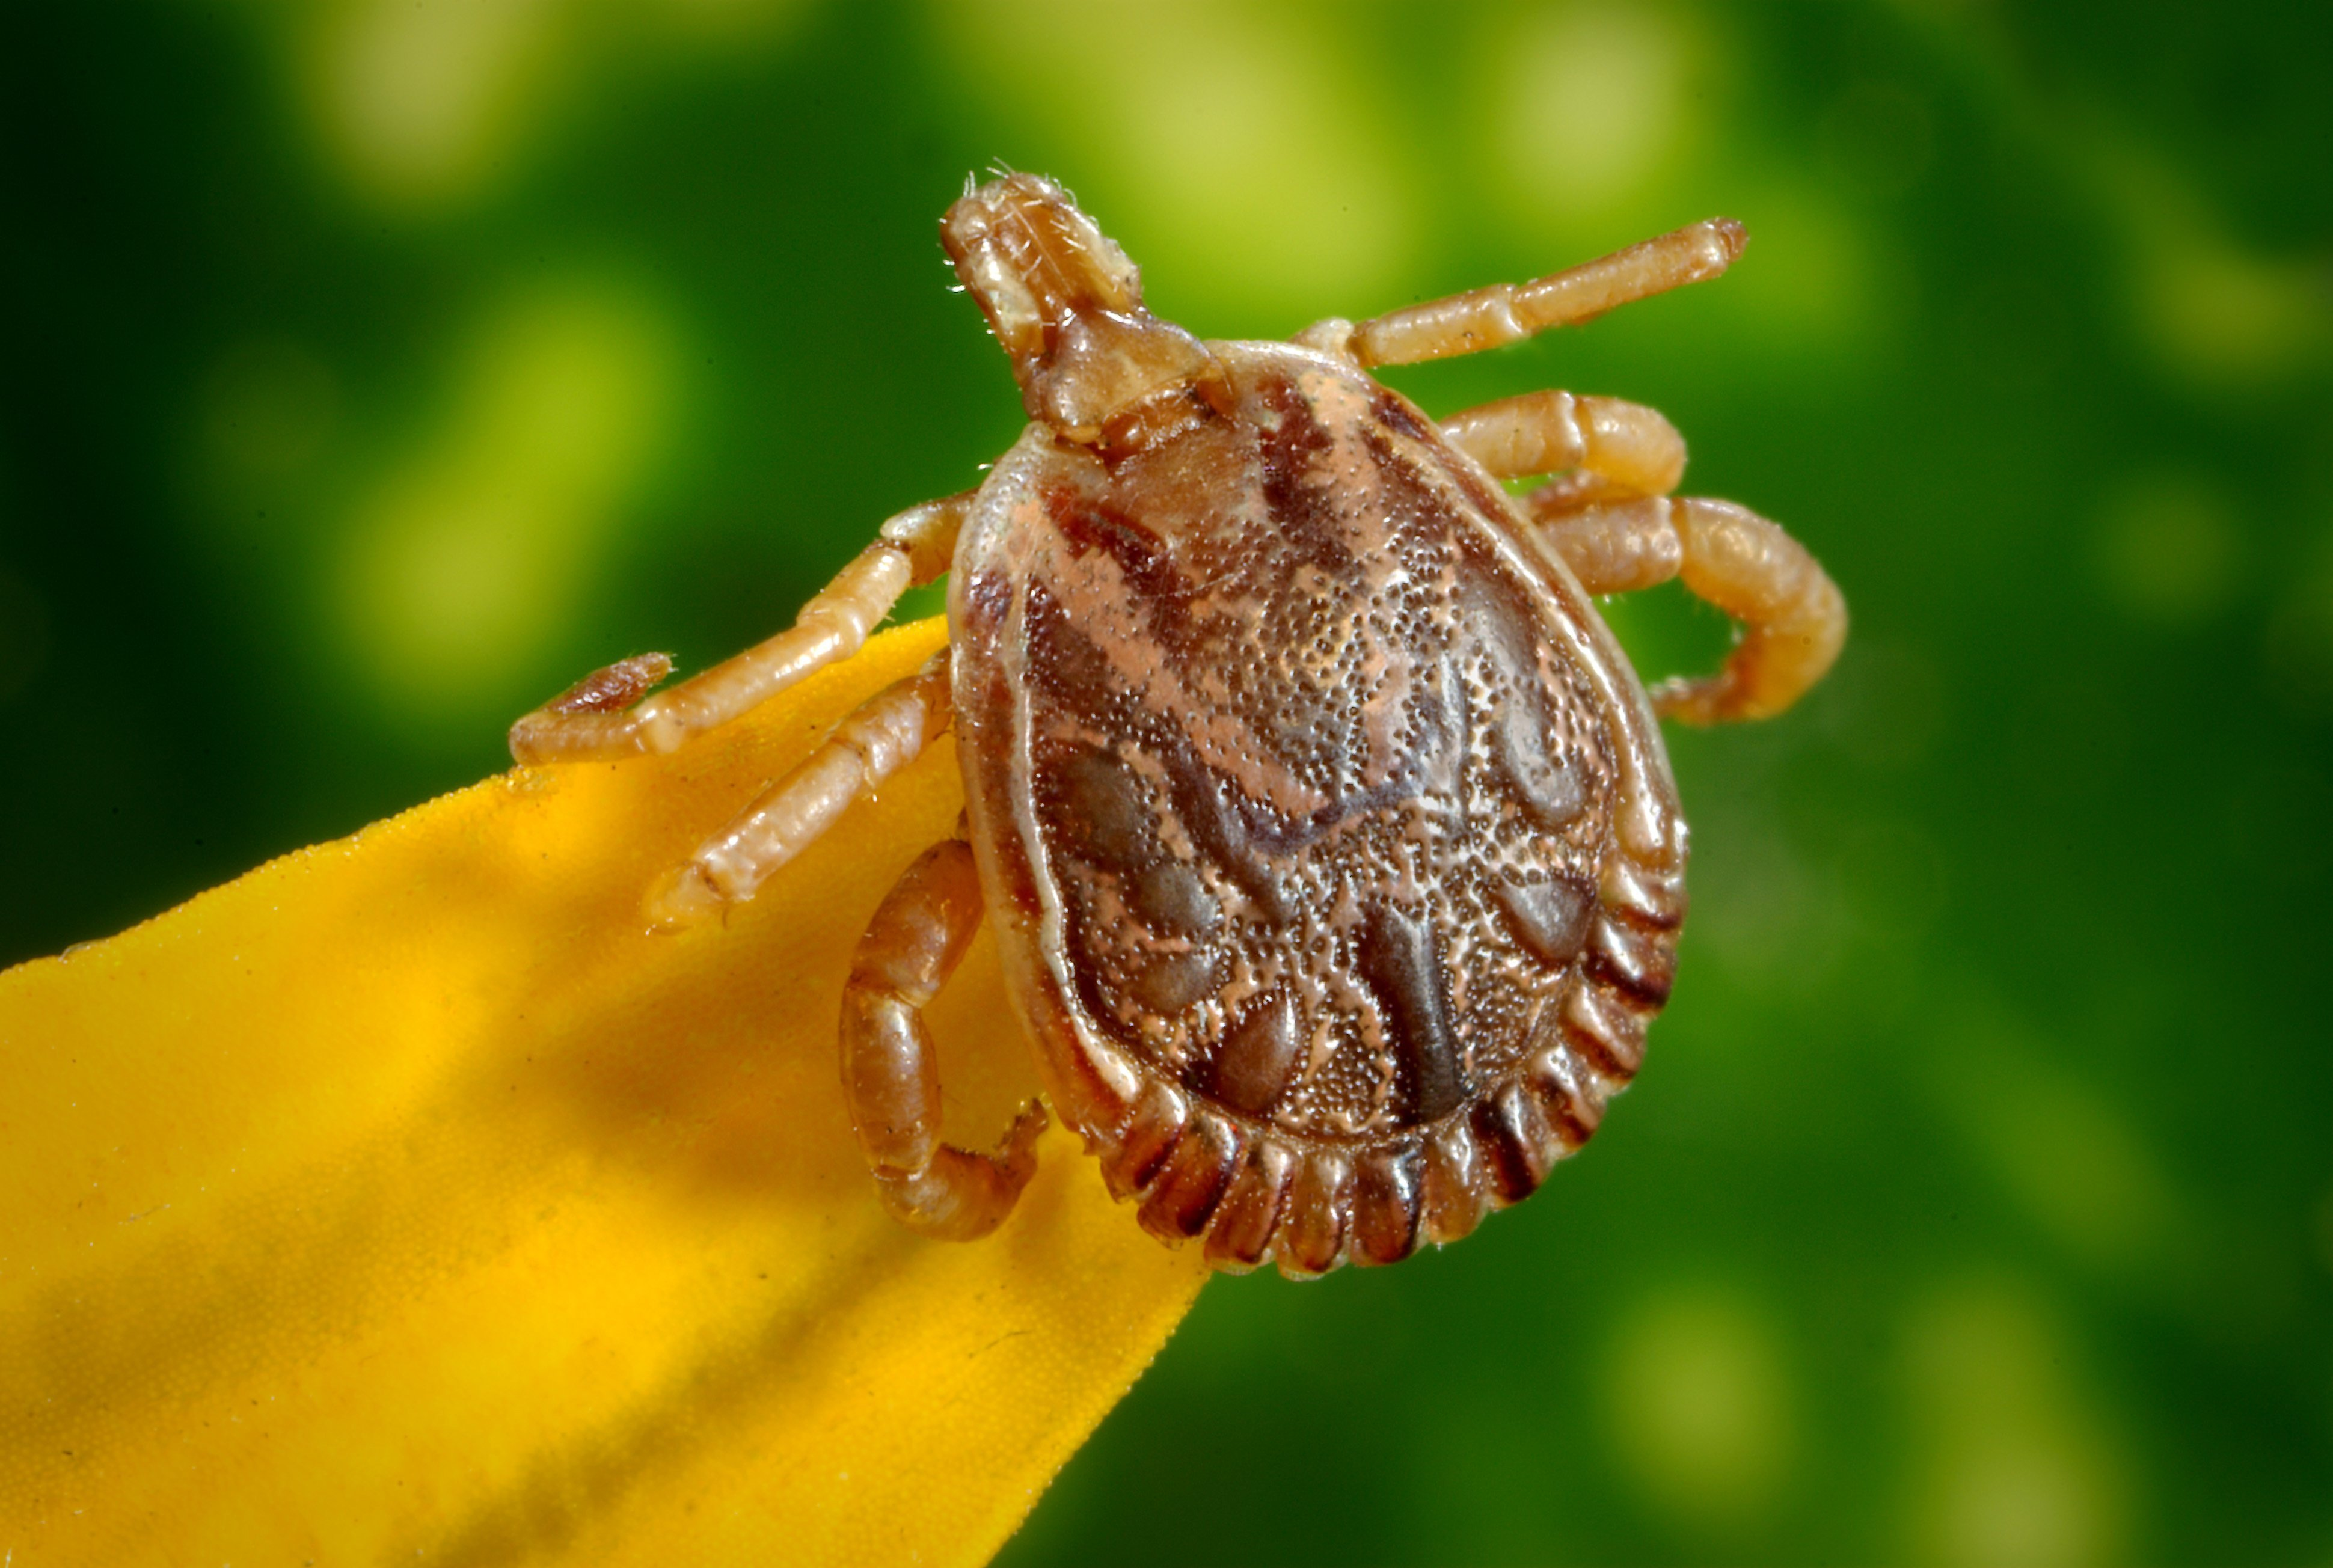 Tick-Borne Illness Suspected in 2-Year-Old's Death